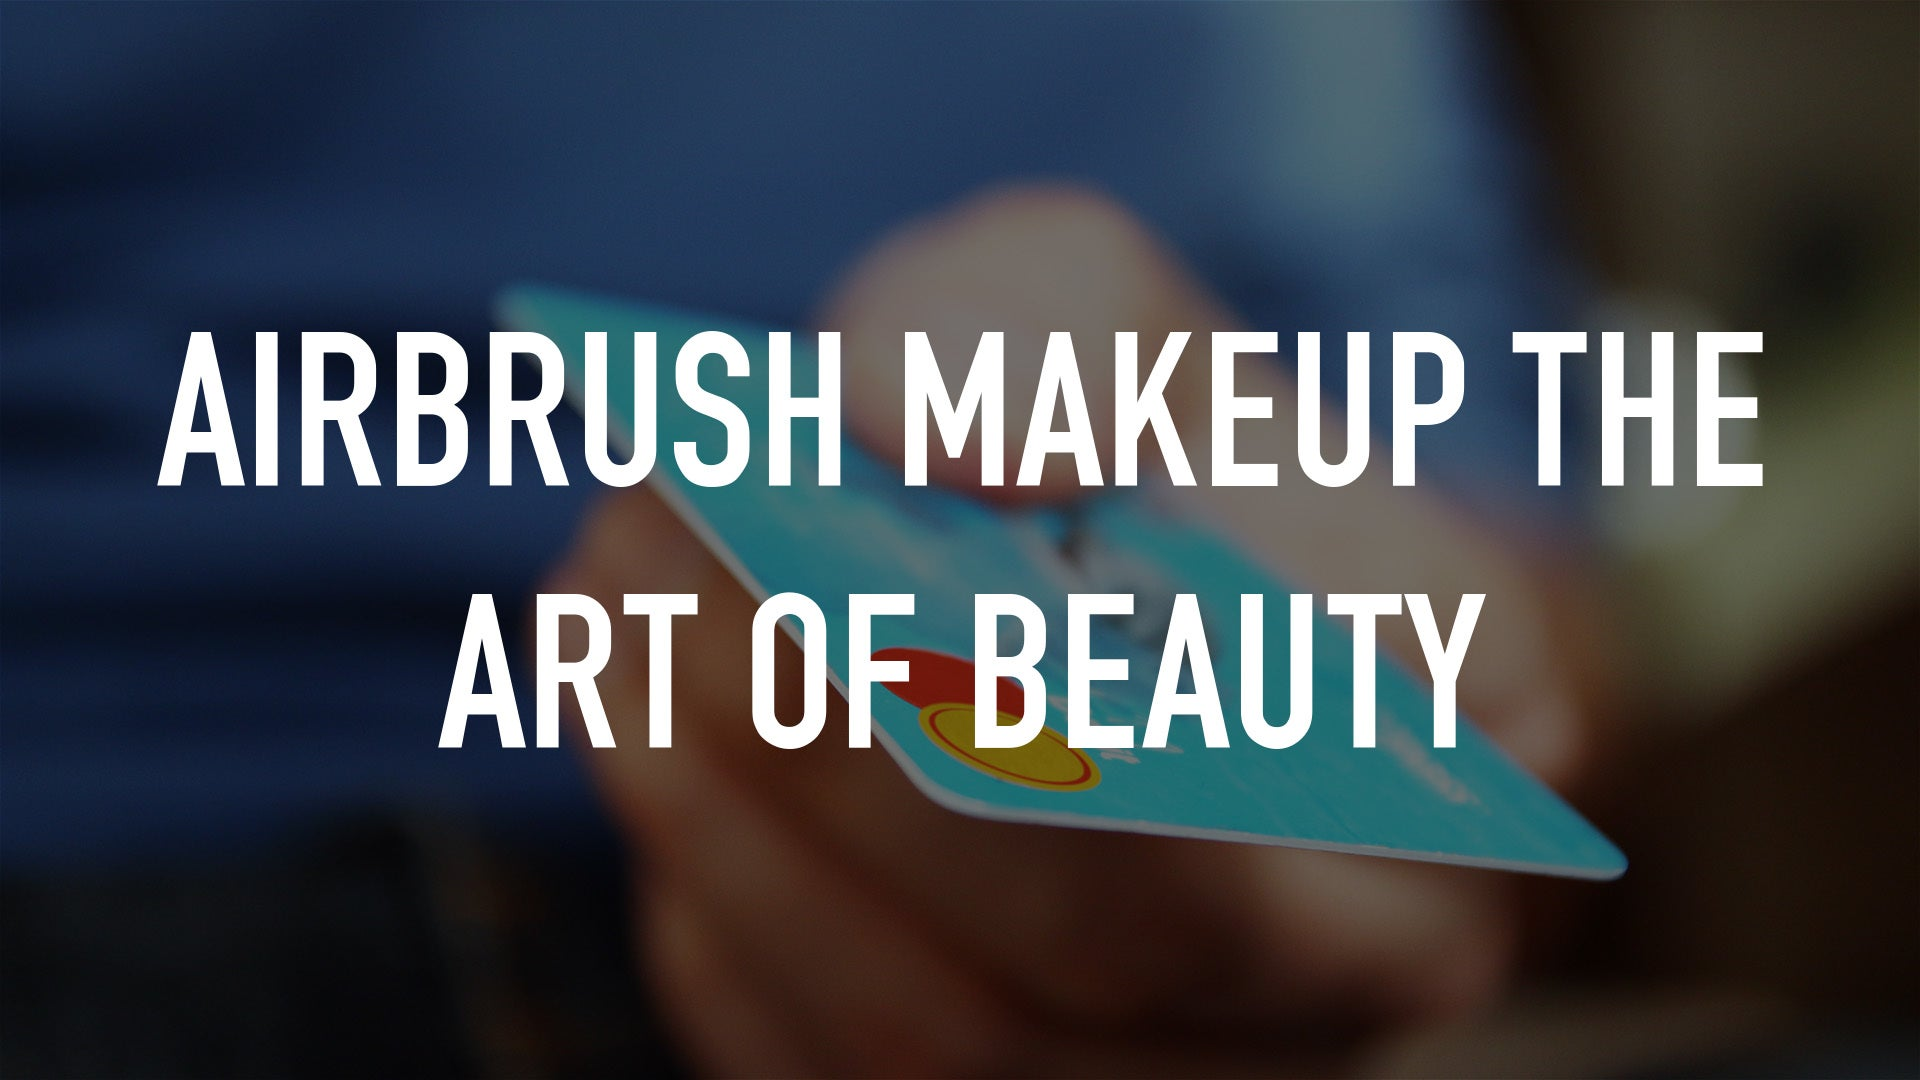 Airbrush Makeup the Art of Beauty